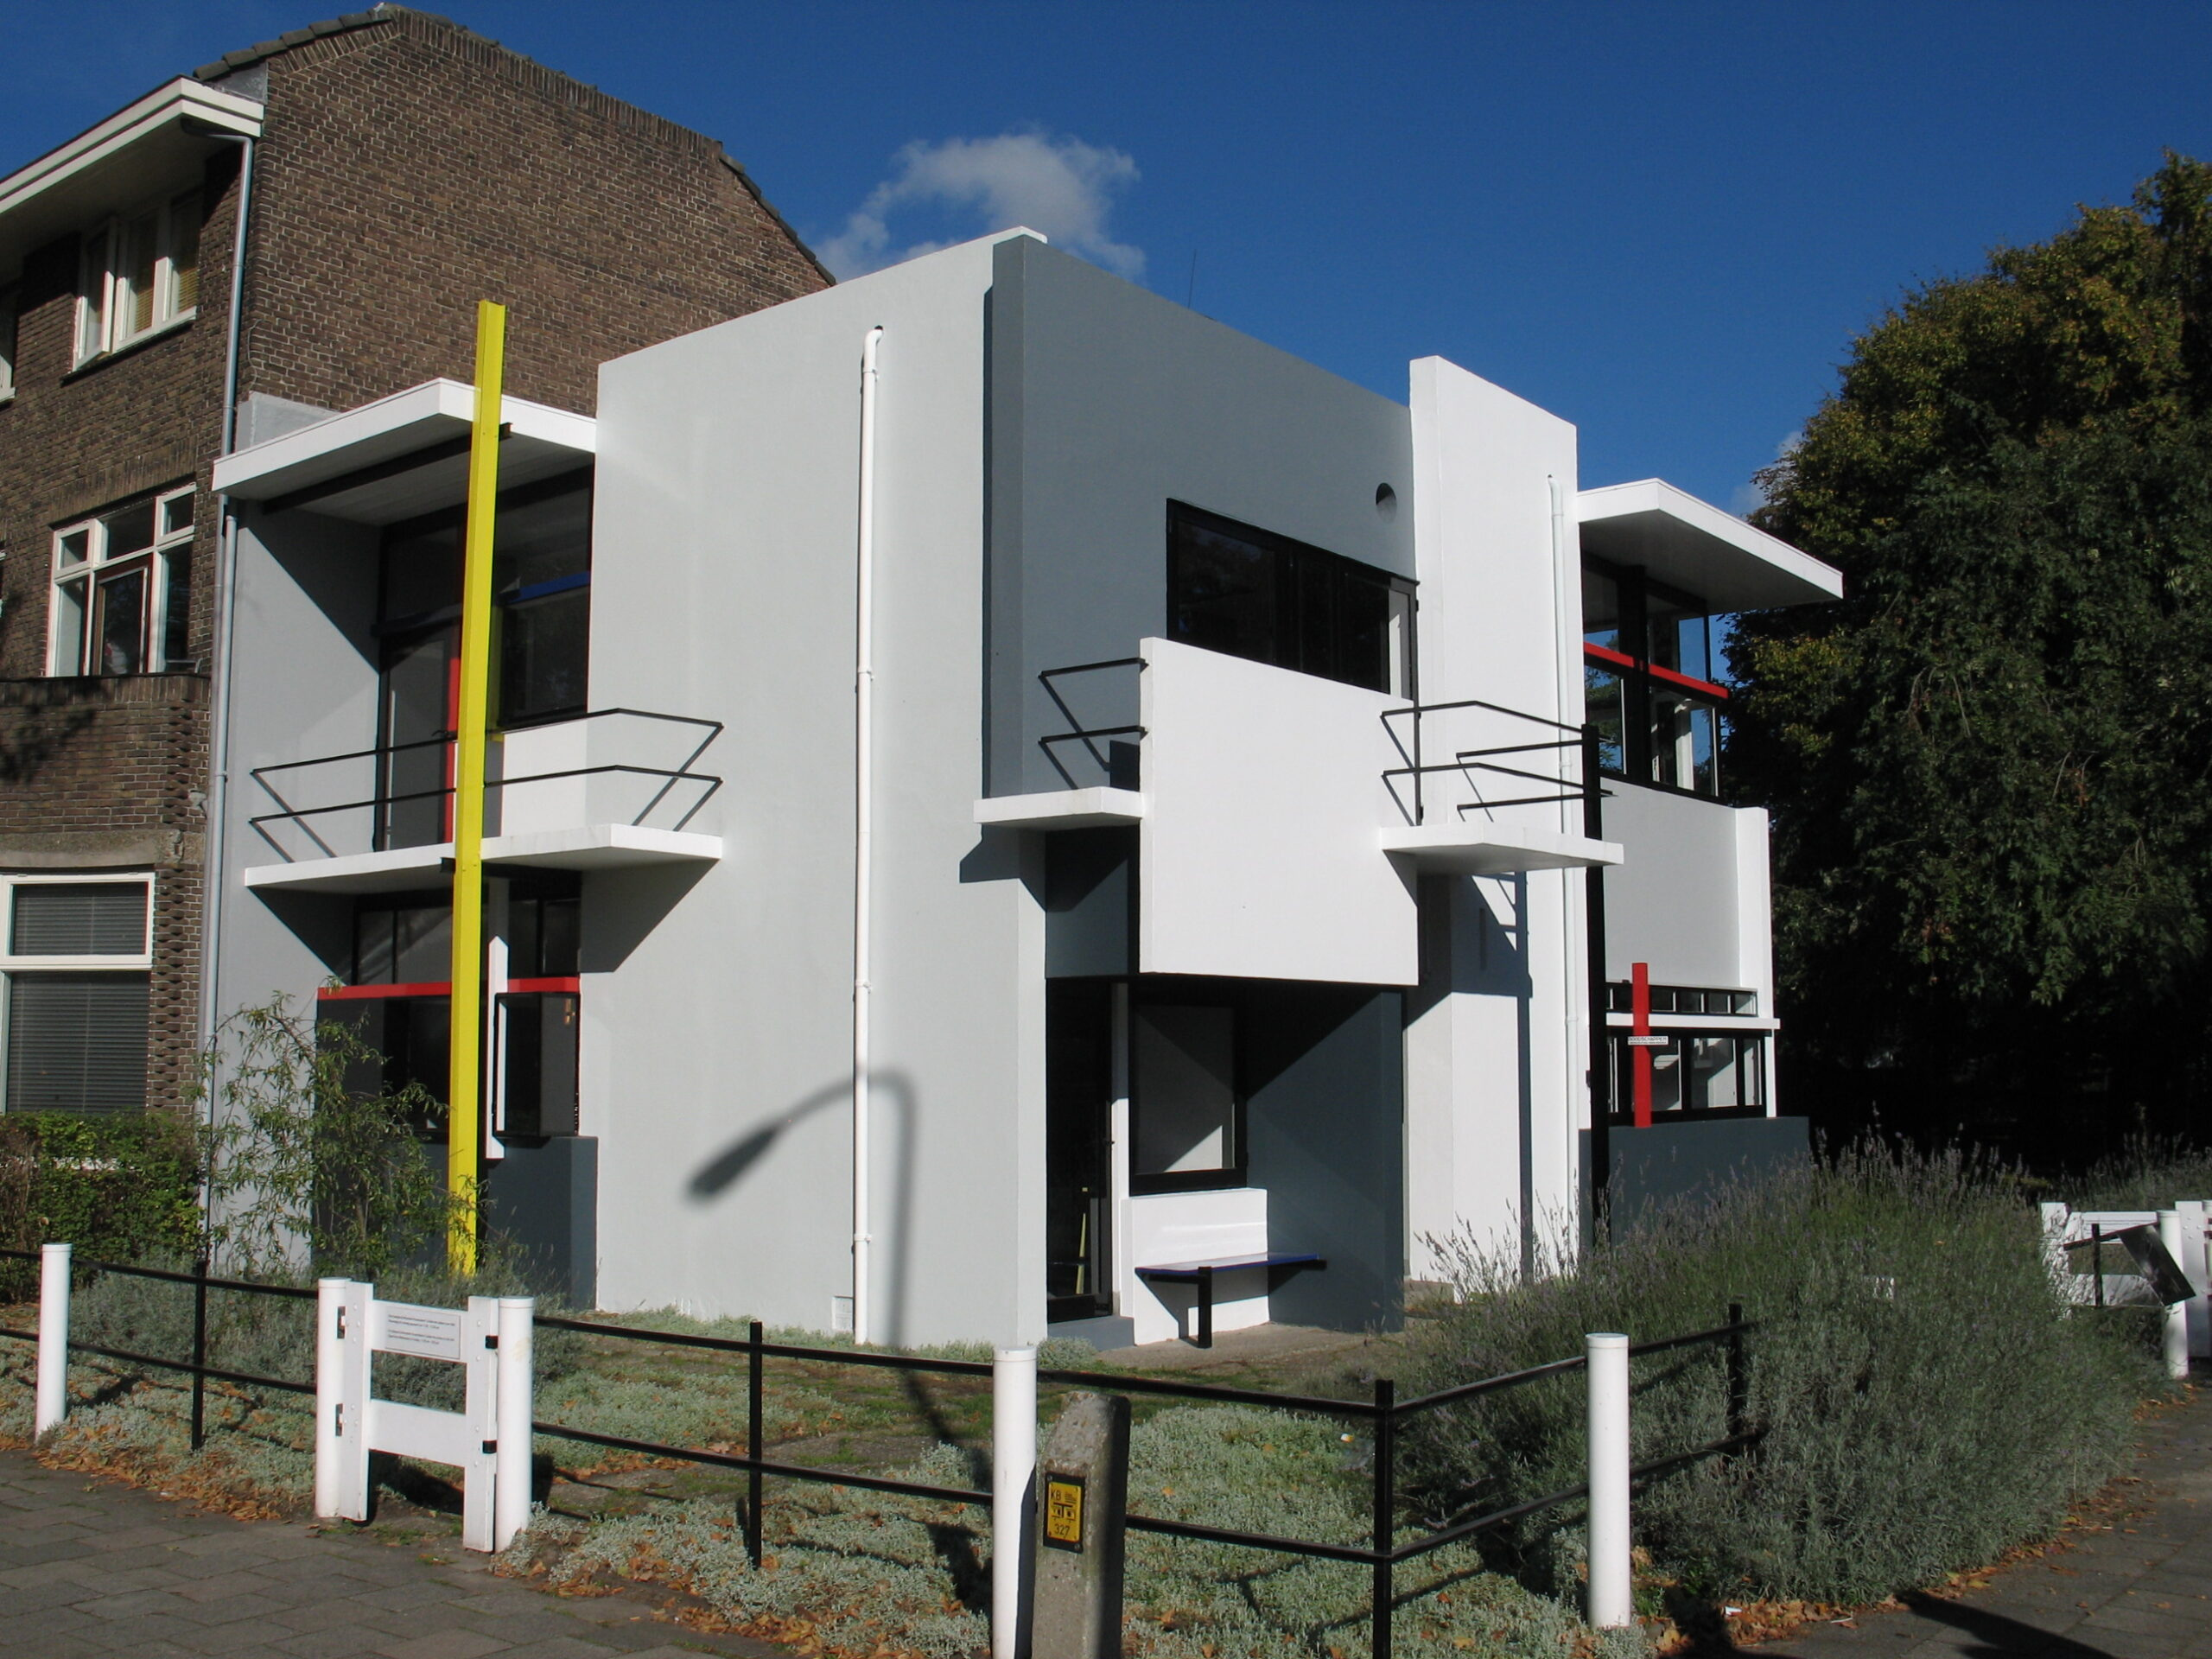 The Rietveld Schröder House in Utrecht, Netherlands, built in 1924 by Dutch architect Gerrit Rietveld